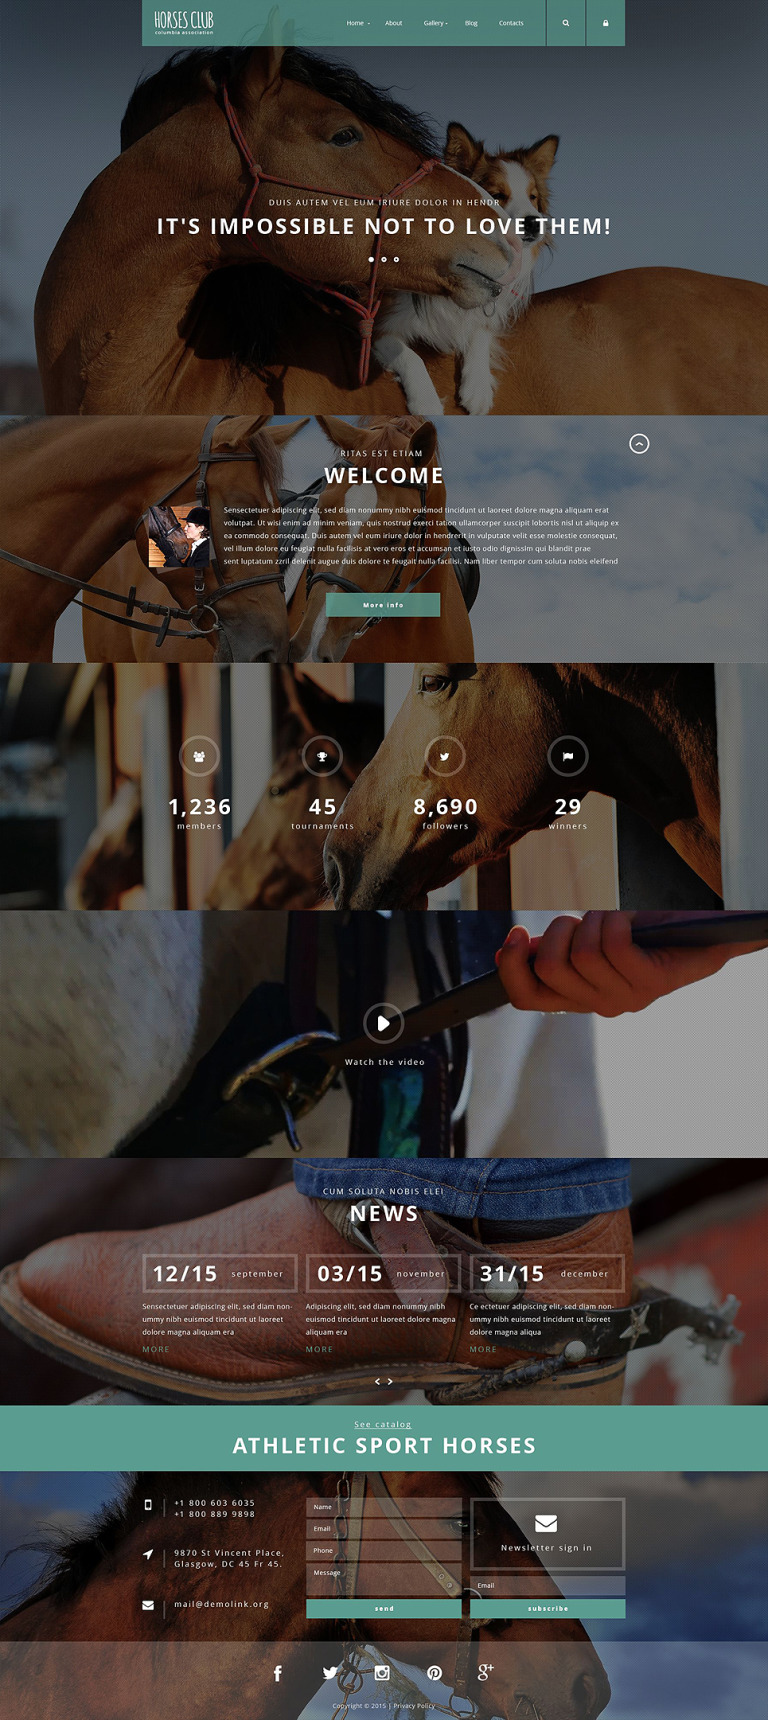 Horses Club Joomla Template New Screenshots BIG